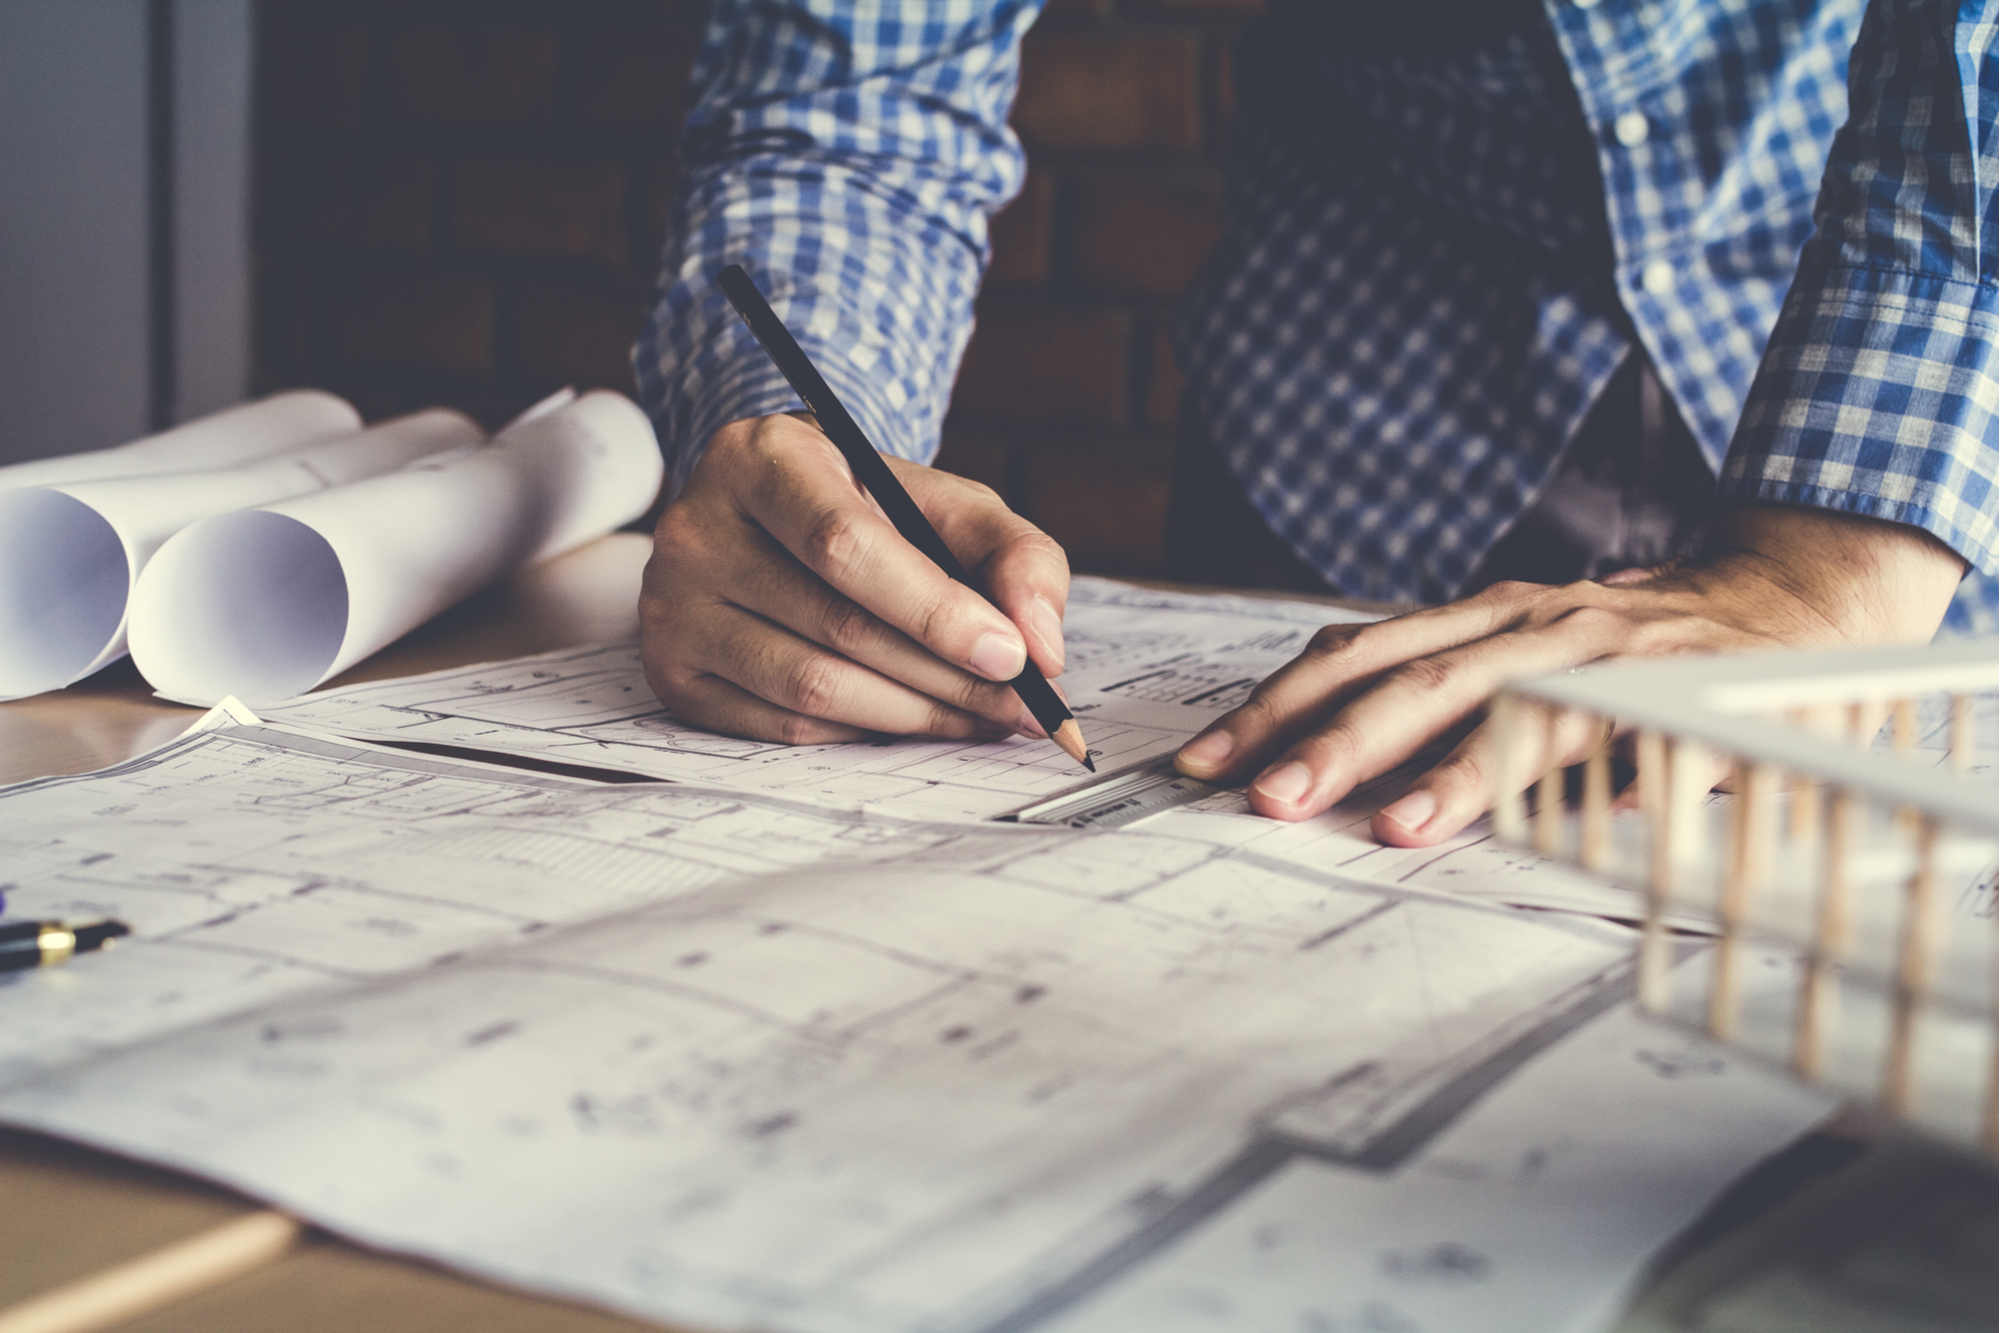 Applying for planning permission: consult an architect or designer